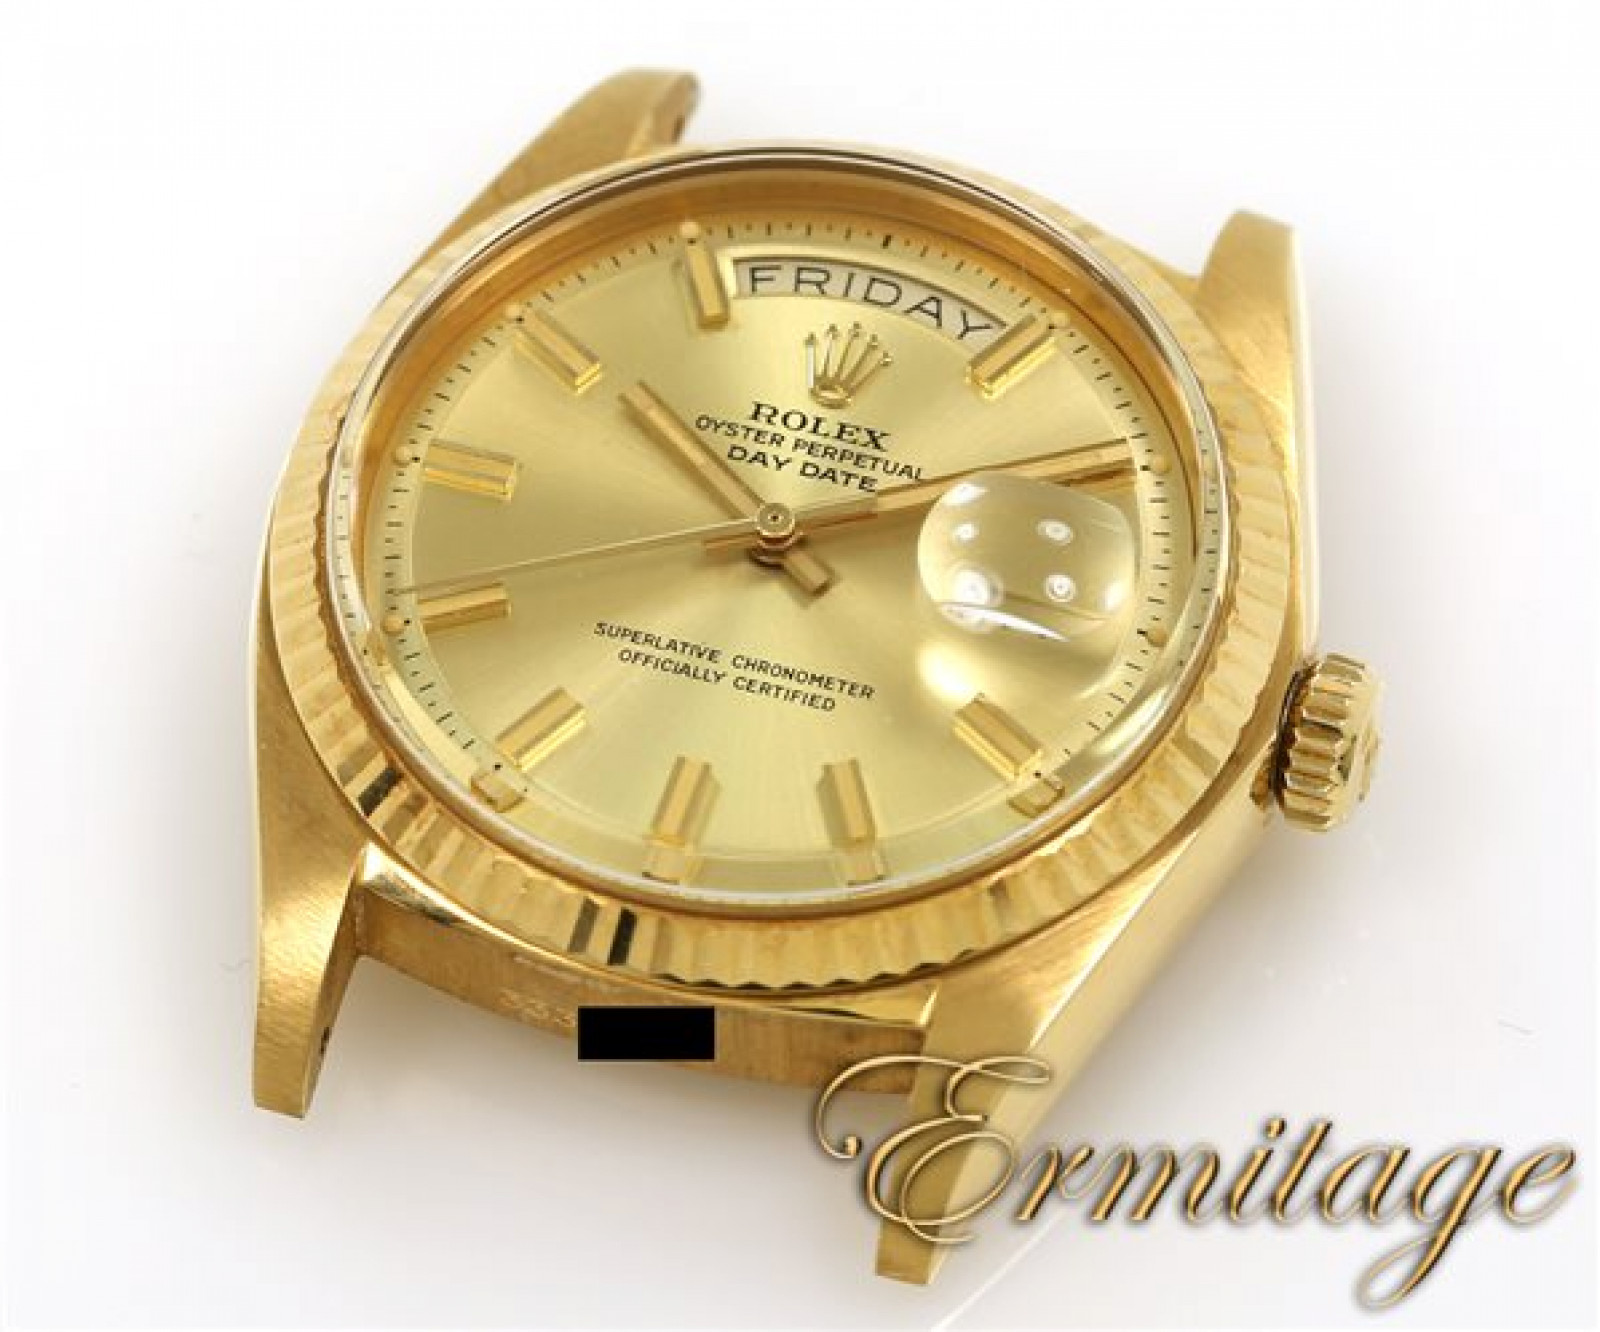 Vintage Rolex Day-Date 1803 Gold Year 1973 1973